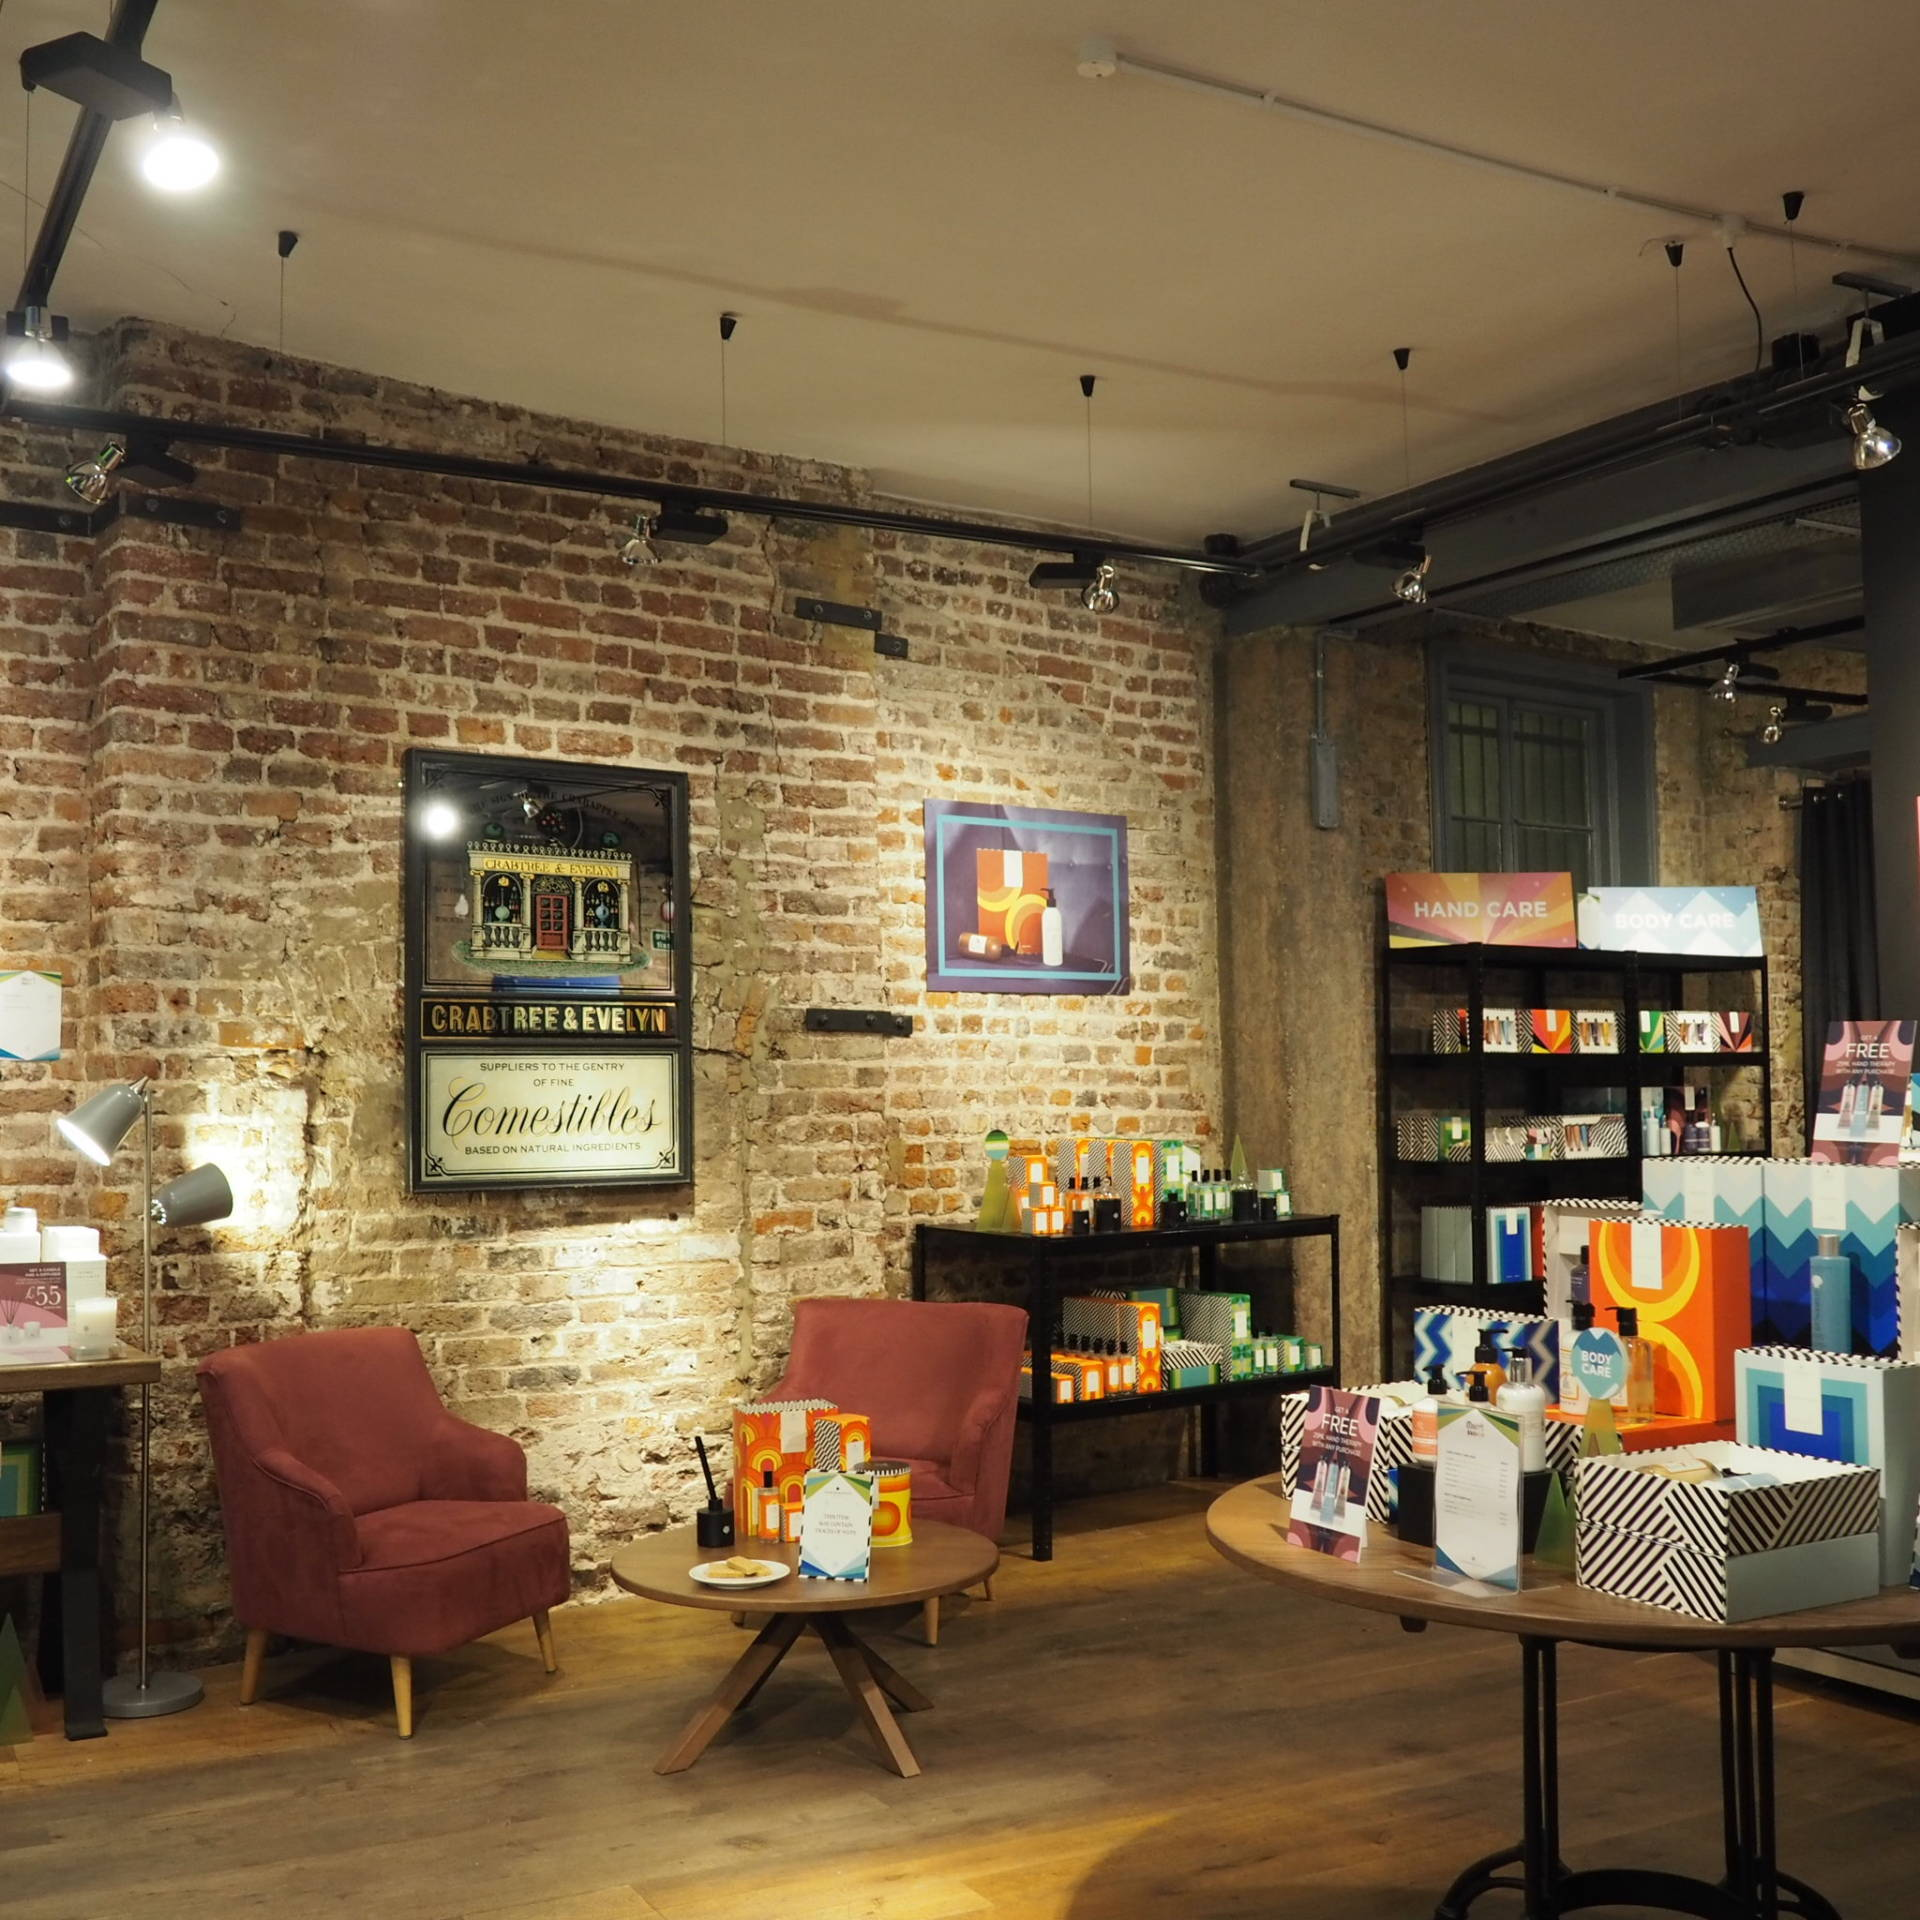 Crabtree-and-Evelyn-Marylebone-London